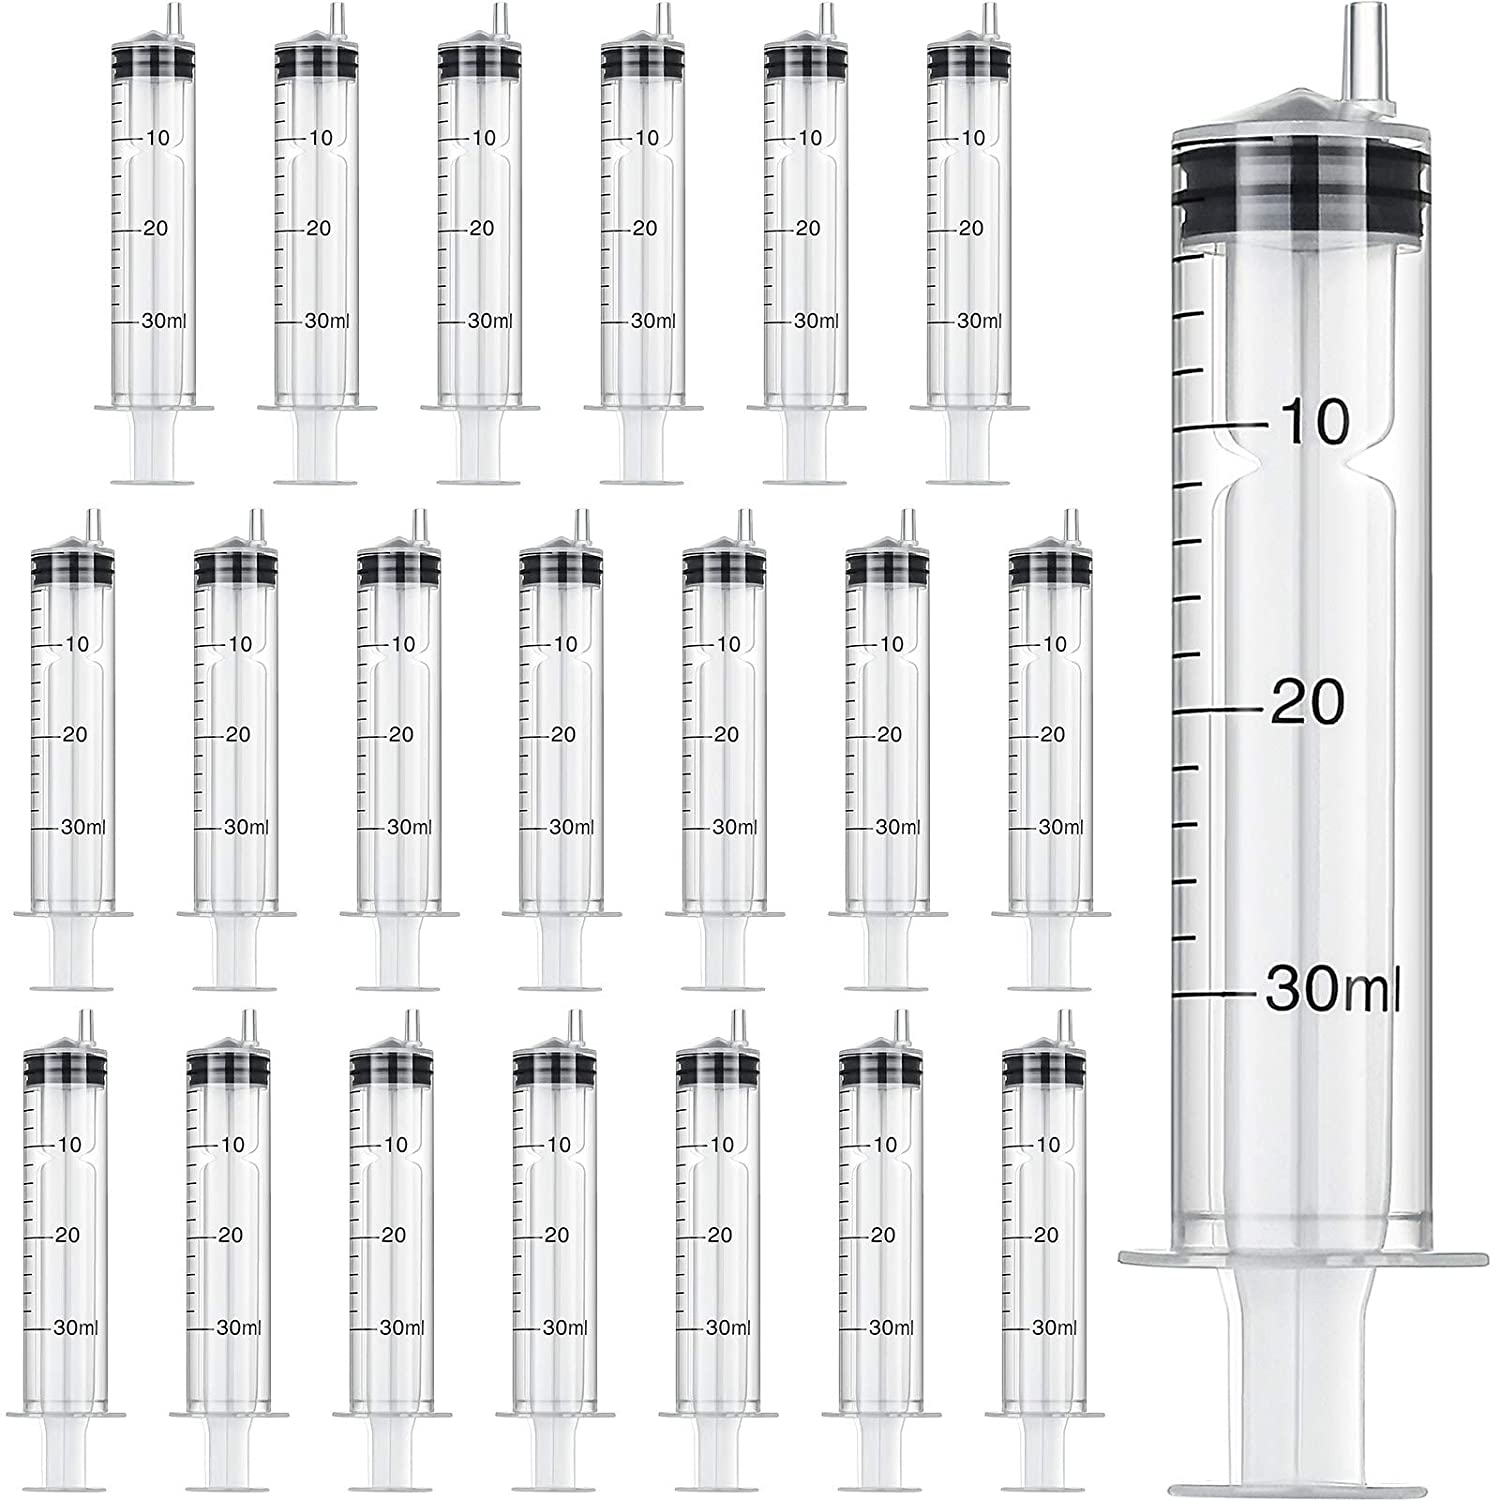 Large Plastic Syringe for Scientific Labs and Dispensing Multiple Uses Measuring Syringe Tools (30 ml, 20)